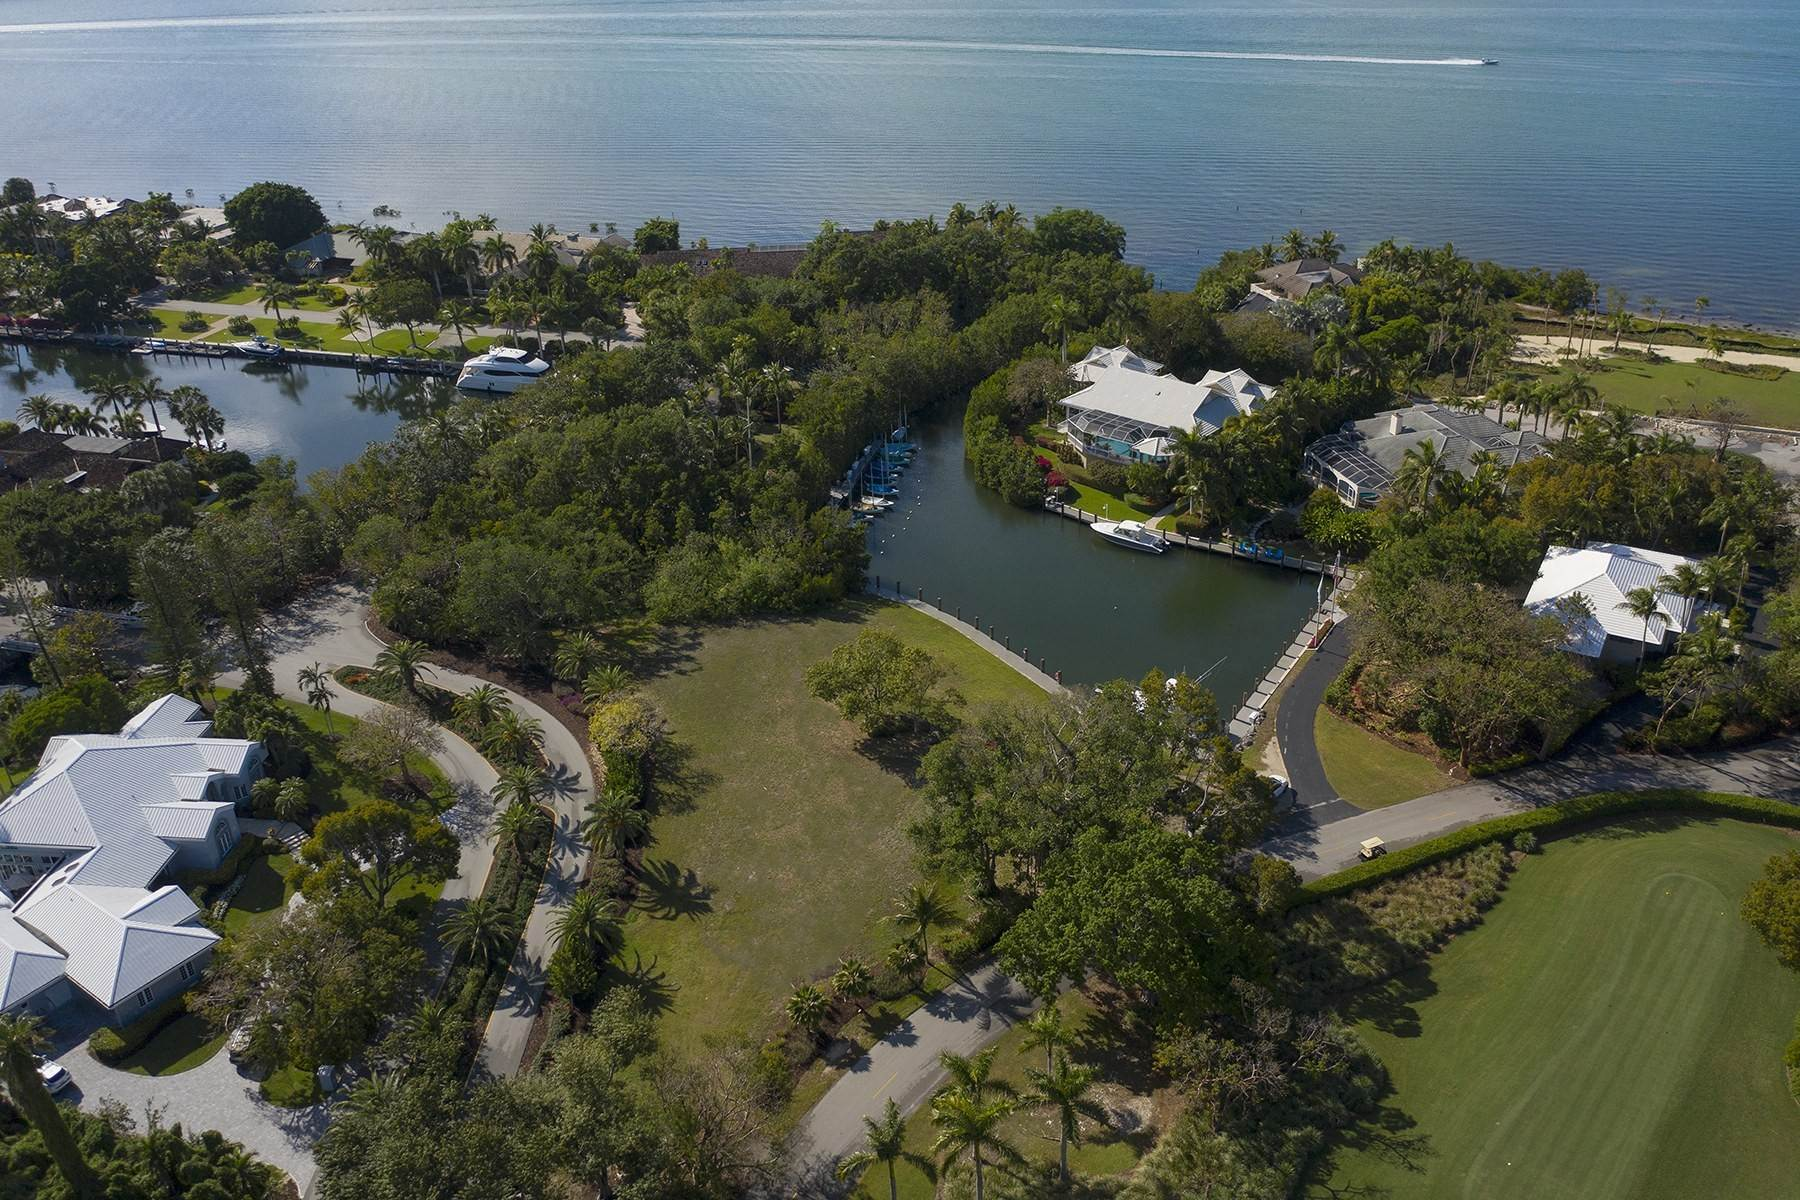 8. Property for Sale at 10 Cannon Point, Key Largo, FL 10 Cannon Point Key Largo, Florida 33037 United States